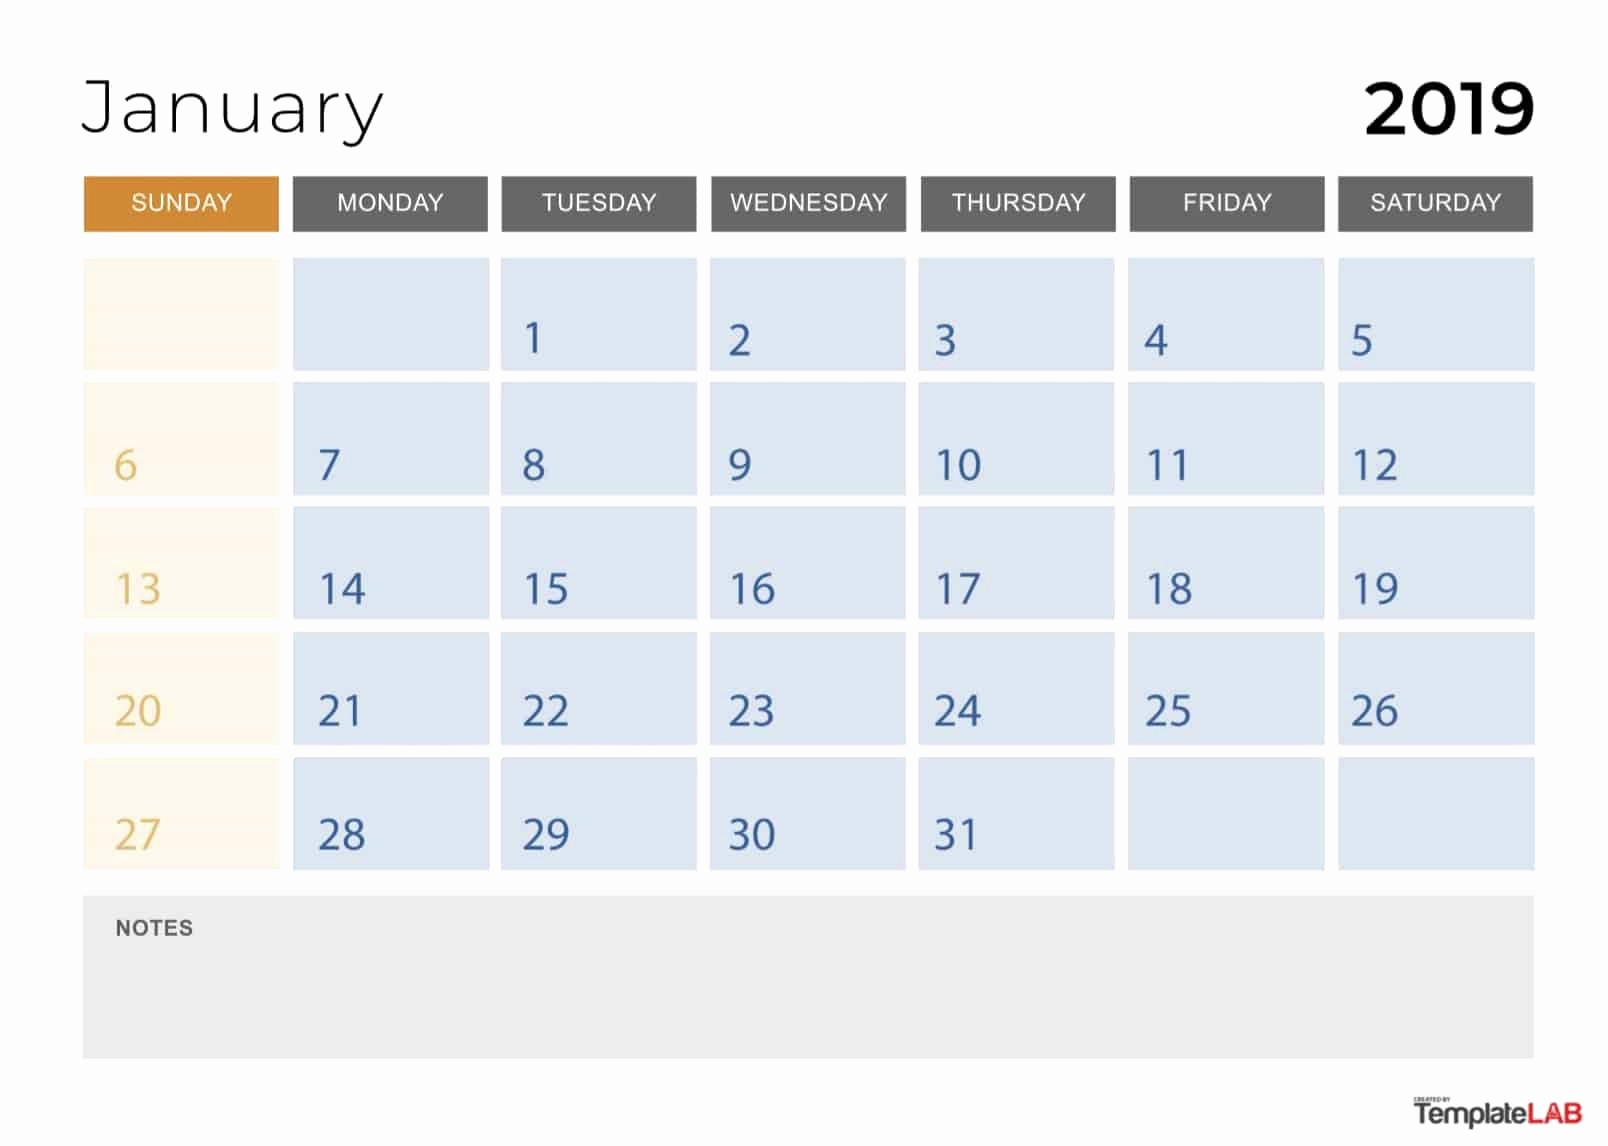 2019 Printable Calendar by Month Beautiful 2019 Printable Calendars [monthly with Holidays Yearly